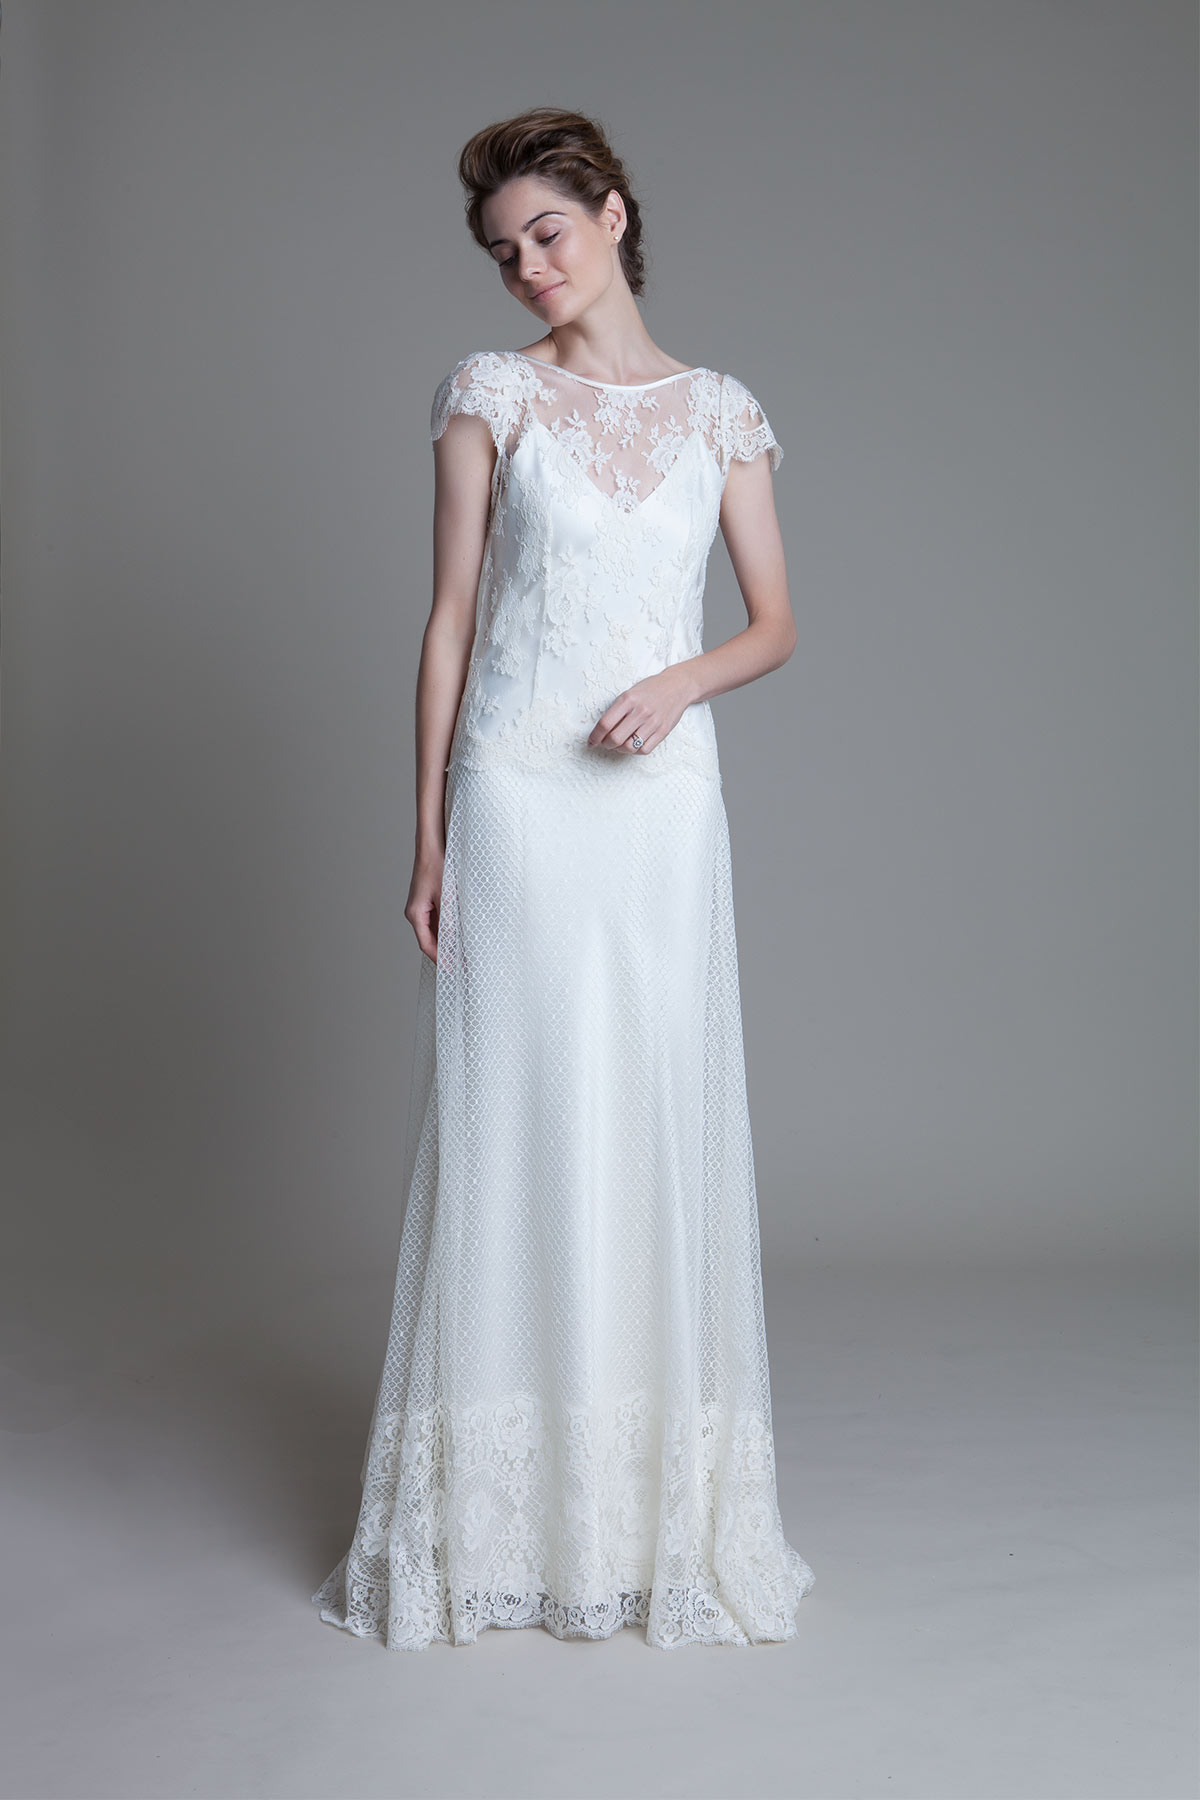 Ivory Iris rose french lace over an ivory V neck slip wedding dress by Halfpenny London